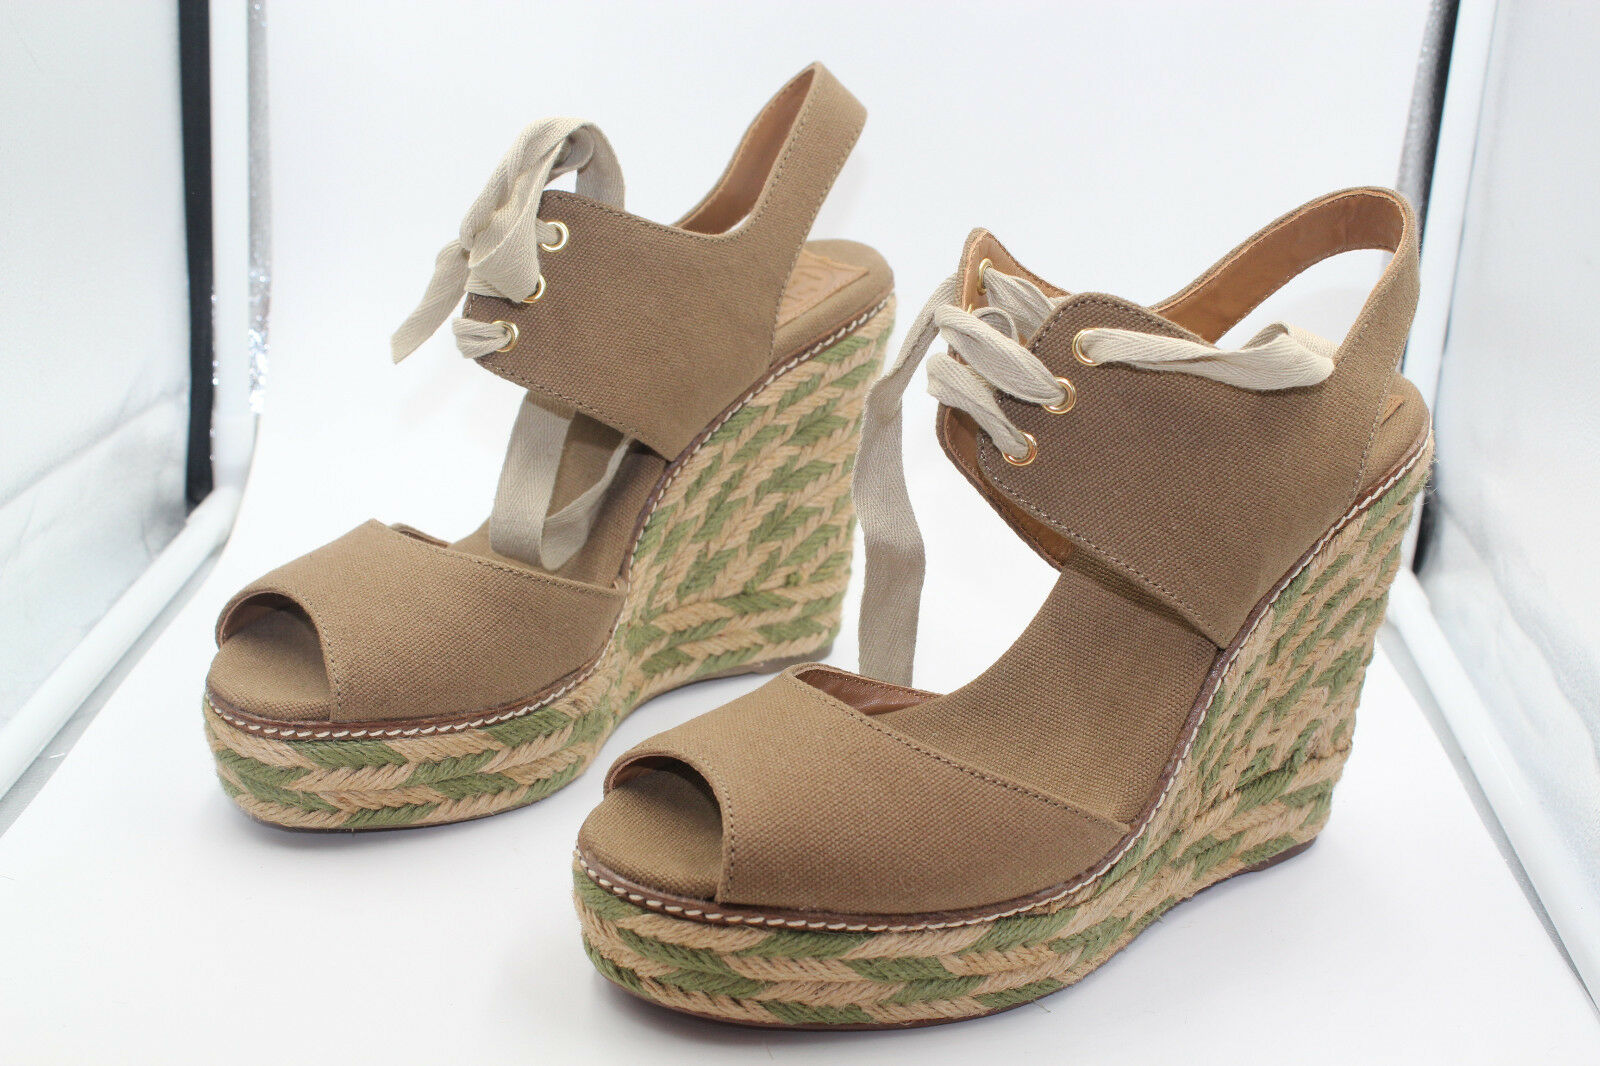 TORY BURCH WEDGE SHOES 12128401 OLIVE 346 LINLEY HIGH ESPADRILLE SIZE 9M